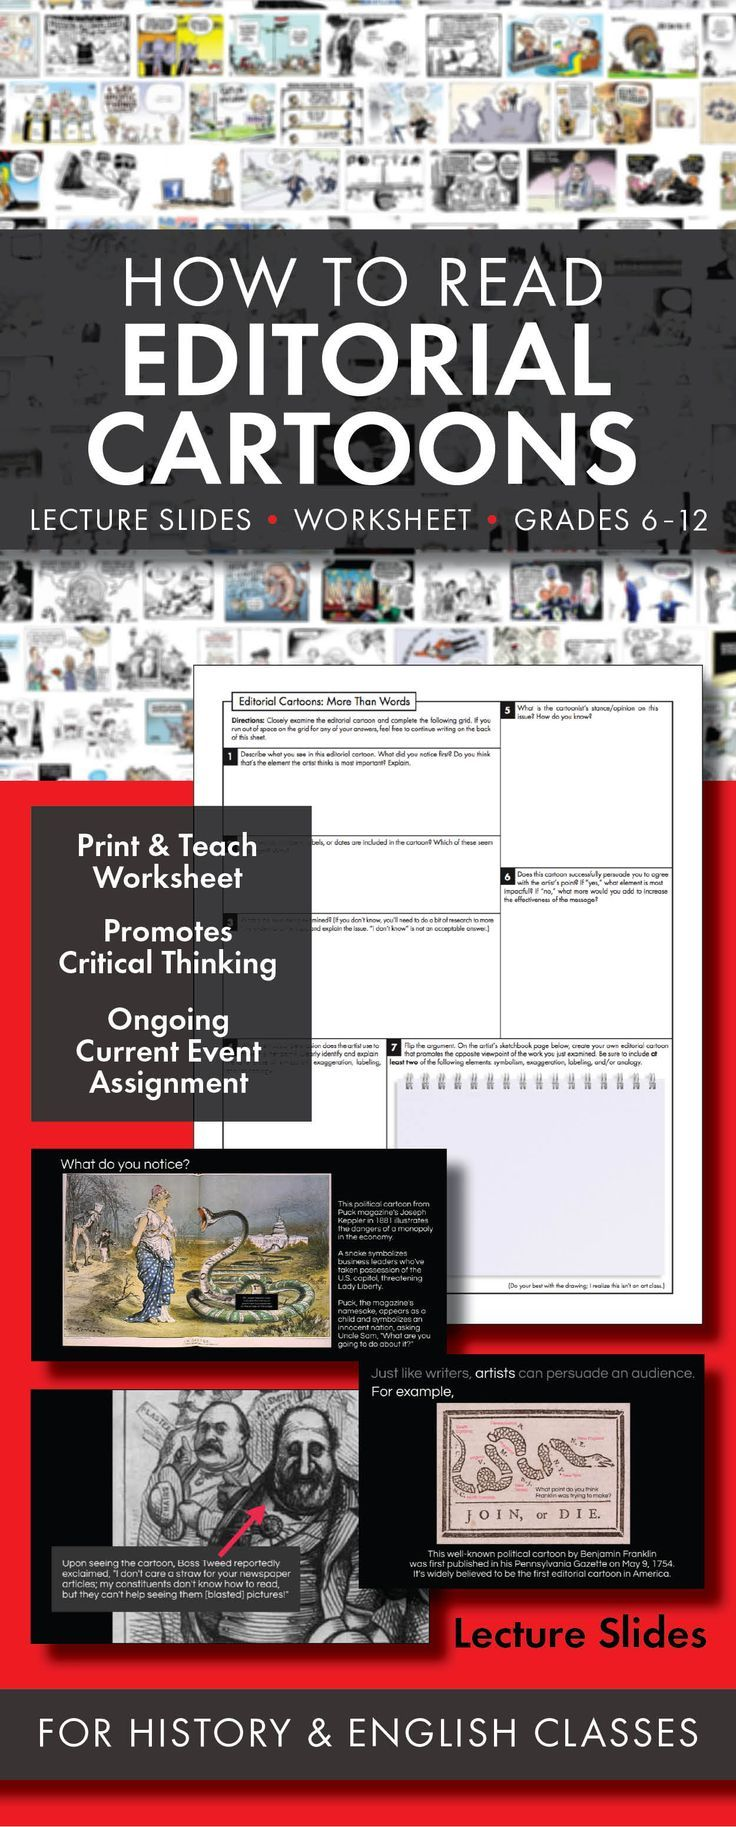 Teach stock market vocabulary through political cartoons bull teach stock market vocabulary through political cartoons bull market teaching economics pinterest political cartoons stock market and primary fandeluxe Choice Image